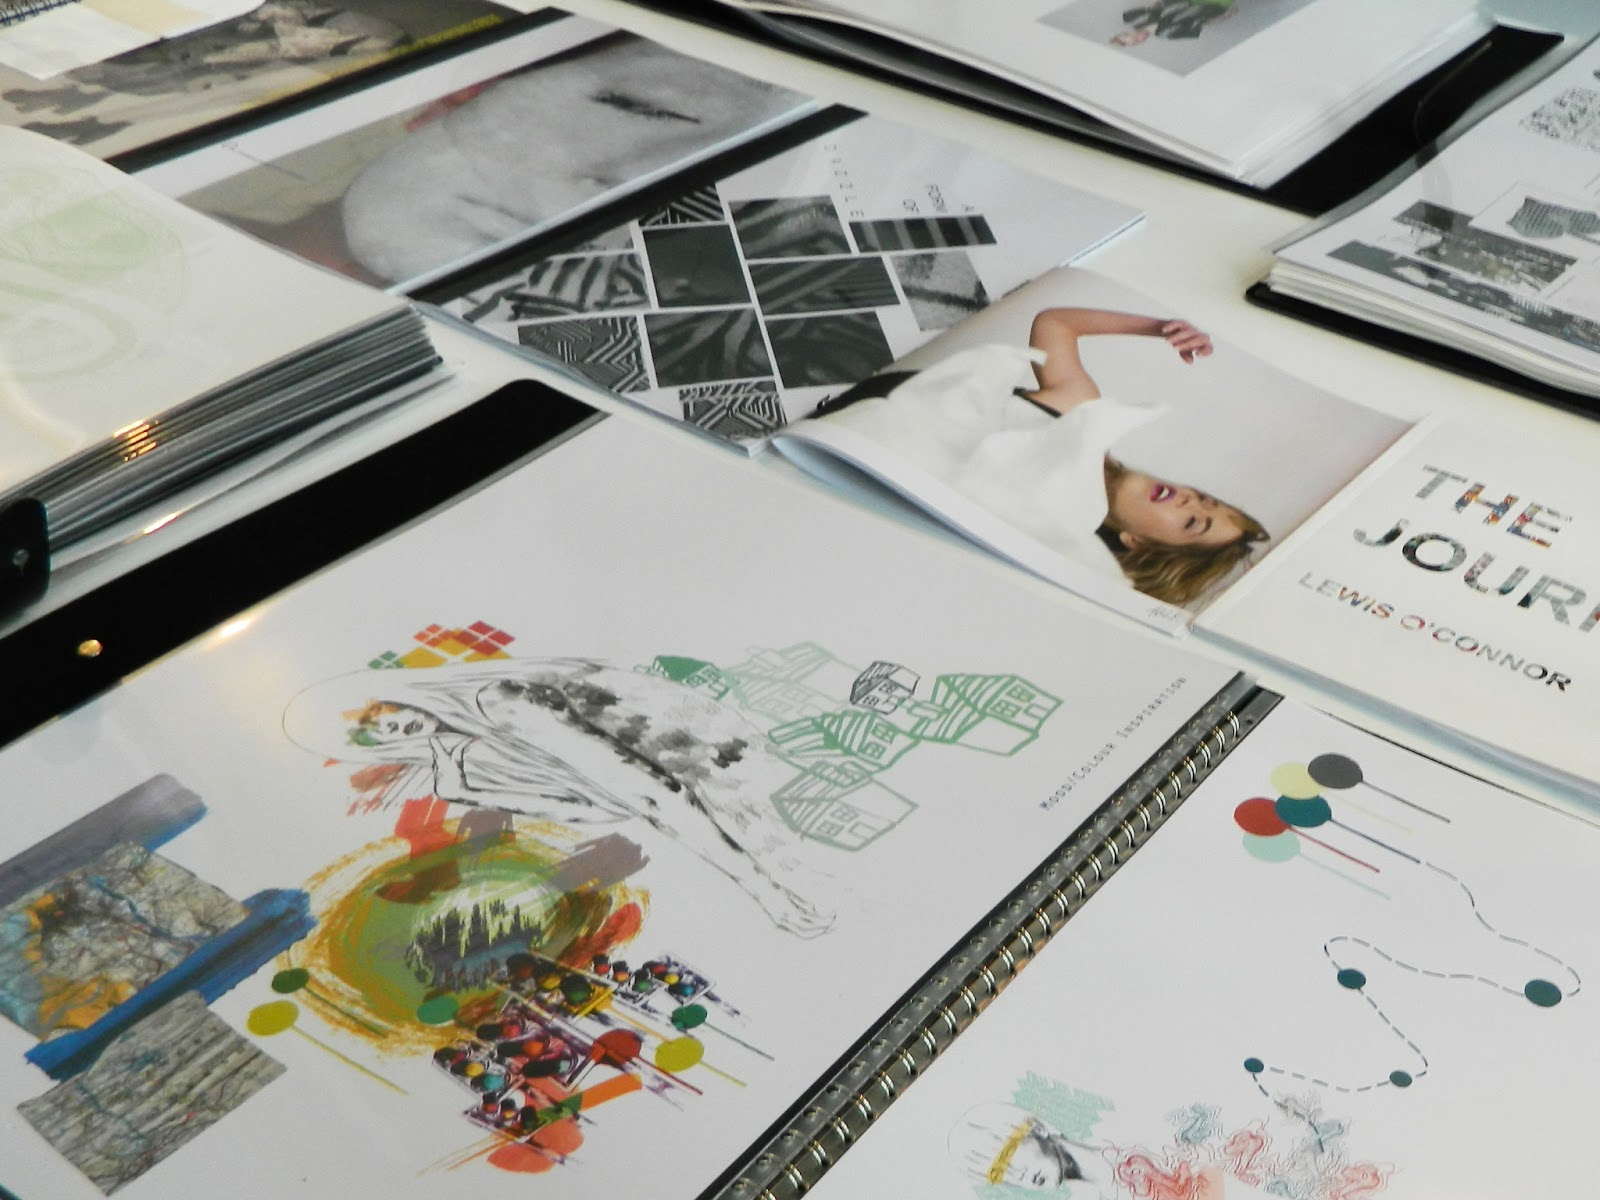 Life In Fashion: Manchester School of Art Degree Show 2013